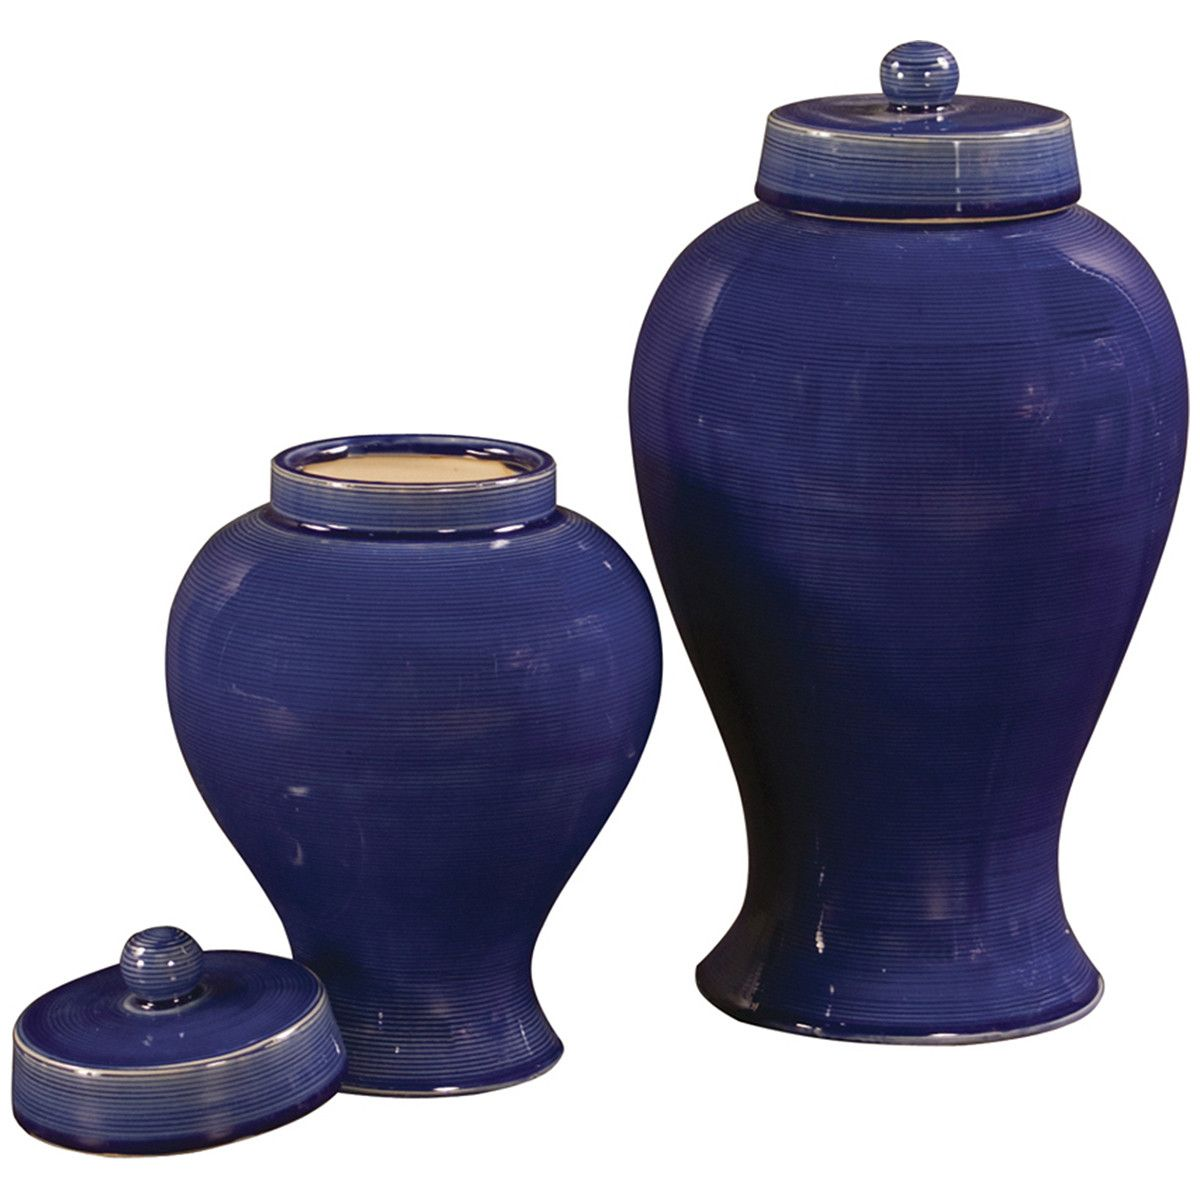 Ceramic Jars With Lids Howard Elliott Cobalt Blue Glaze Ceramic Jars With Lids